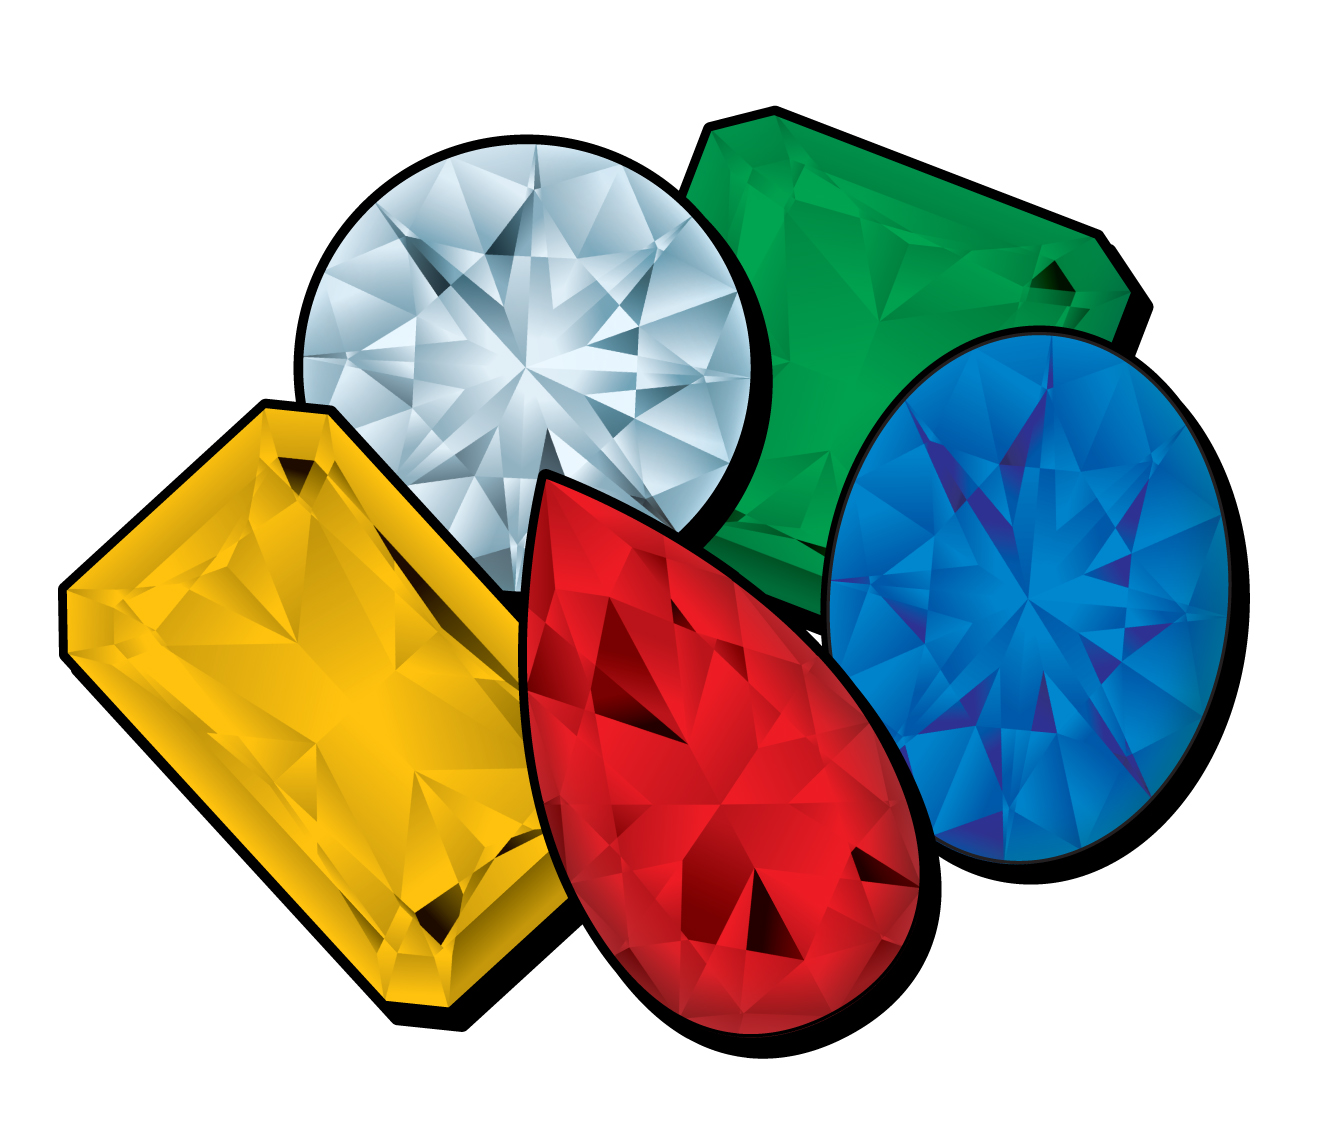 clipart stock Jewel clipart. Free cliparts download clip